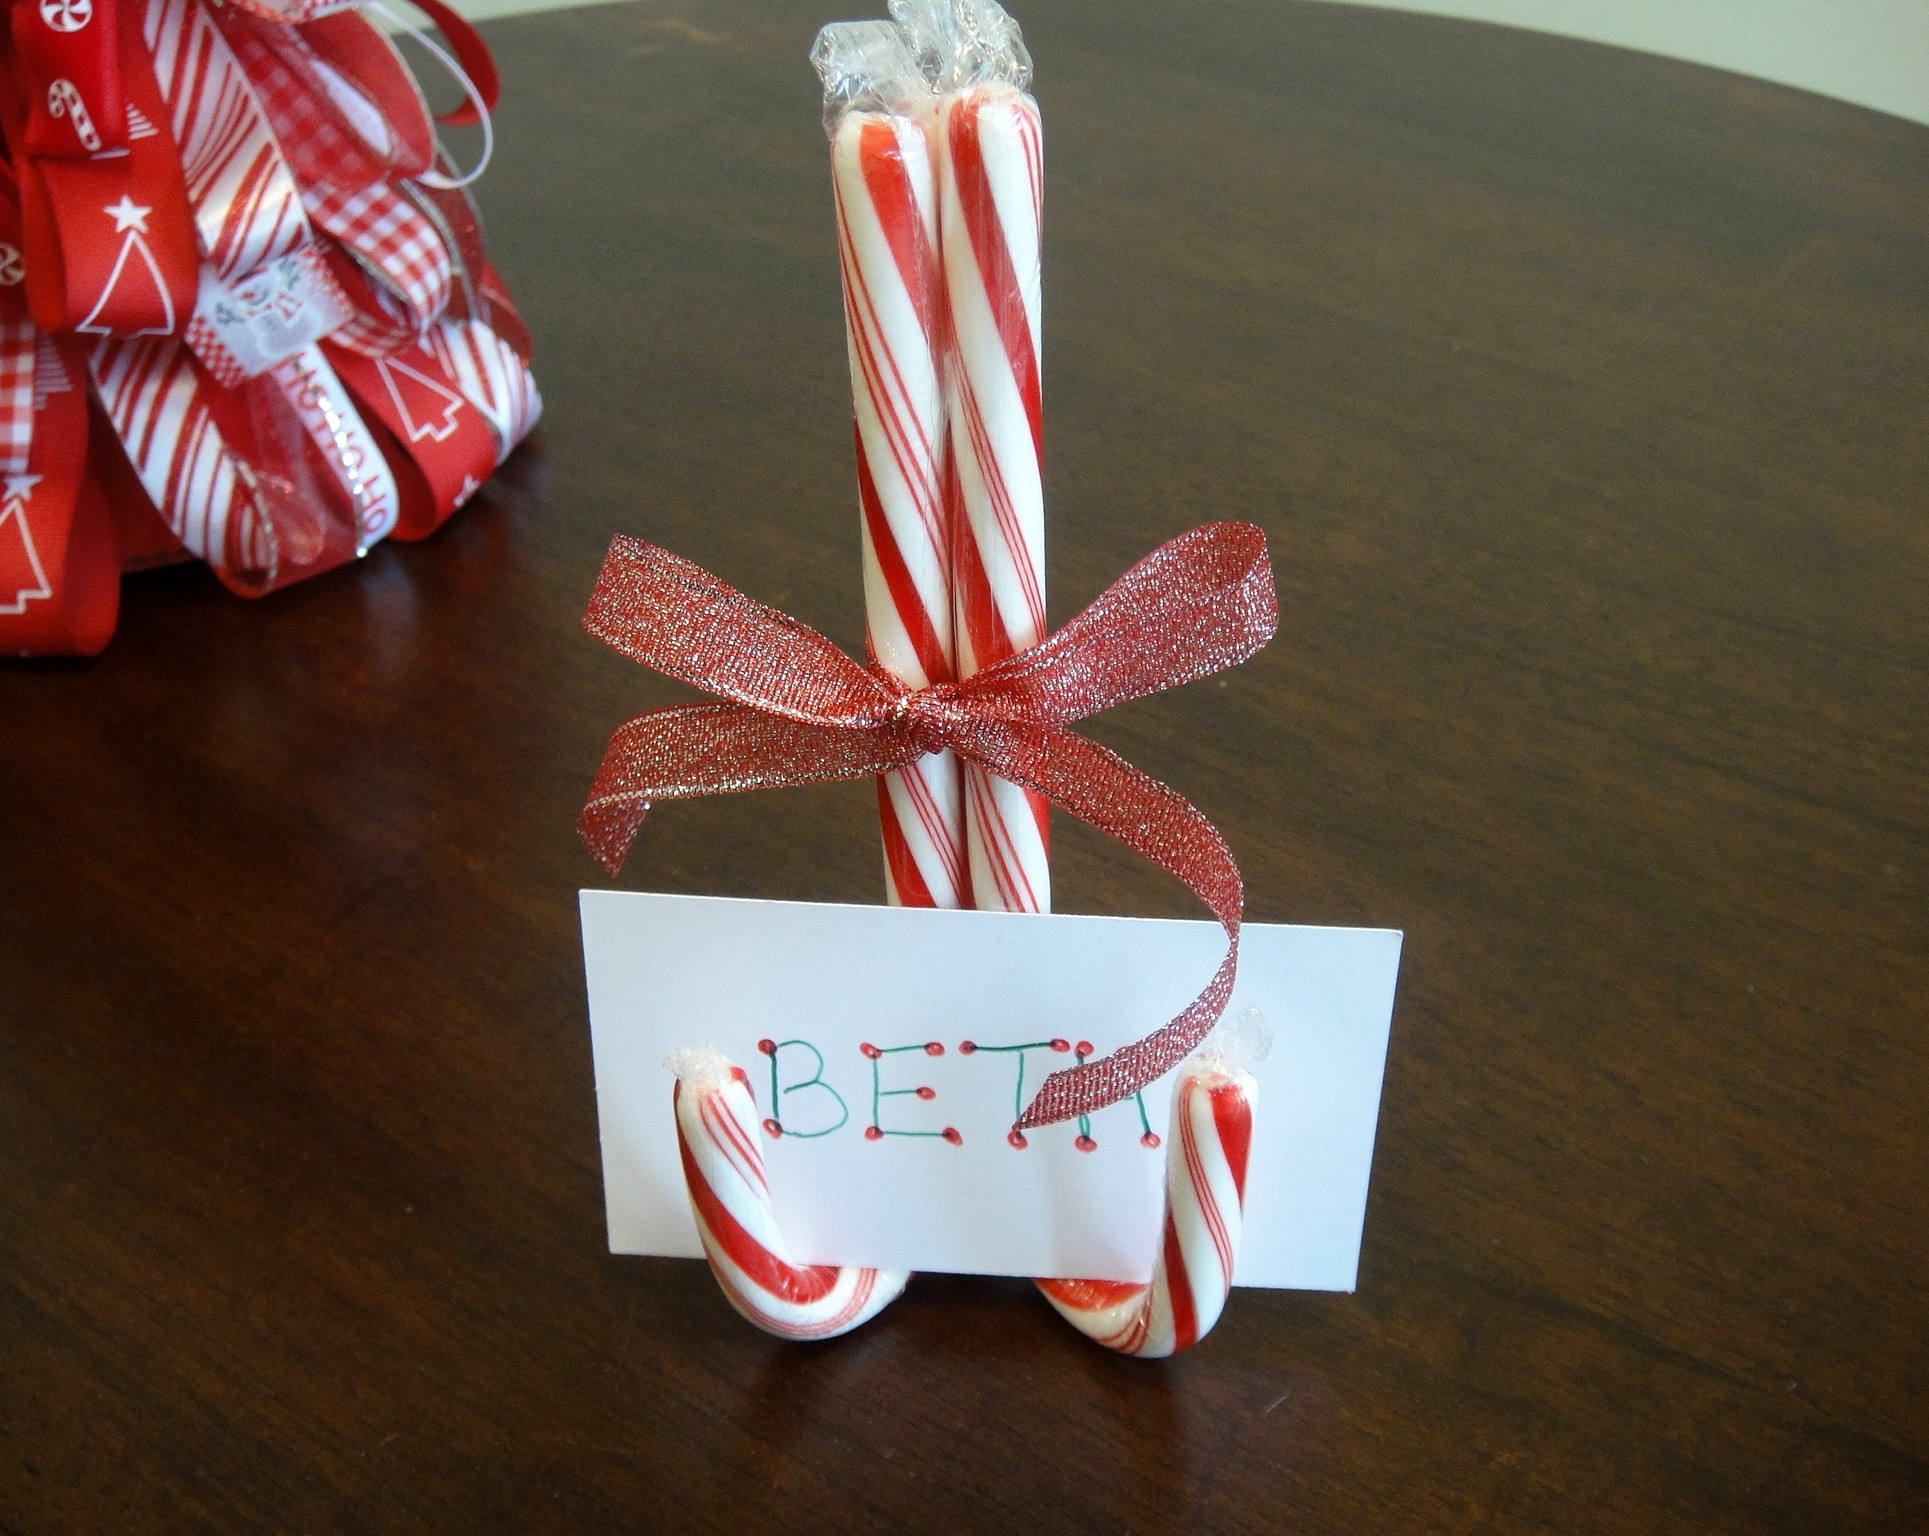 Candy Cane Crafts For Christmas  Candy Cane Craft Ideas for Kids